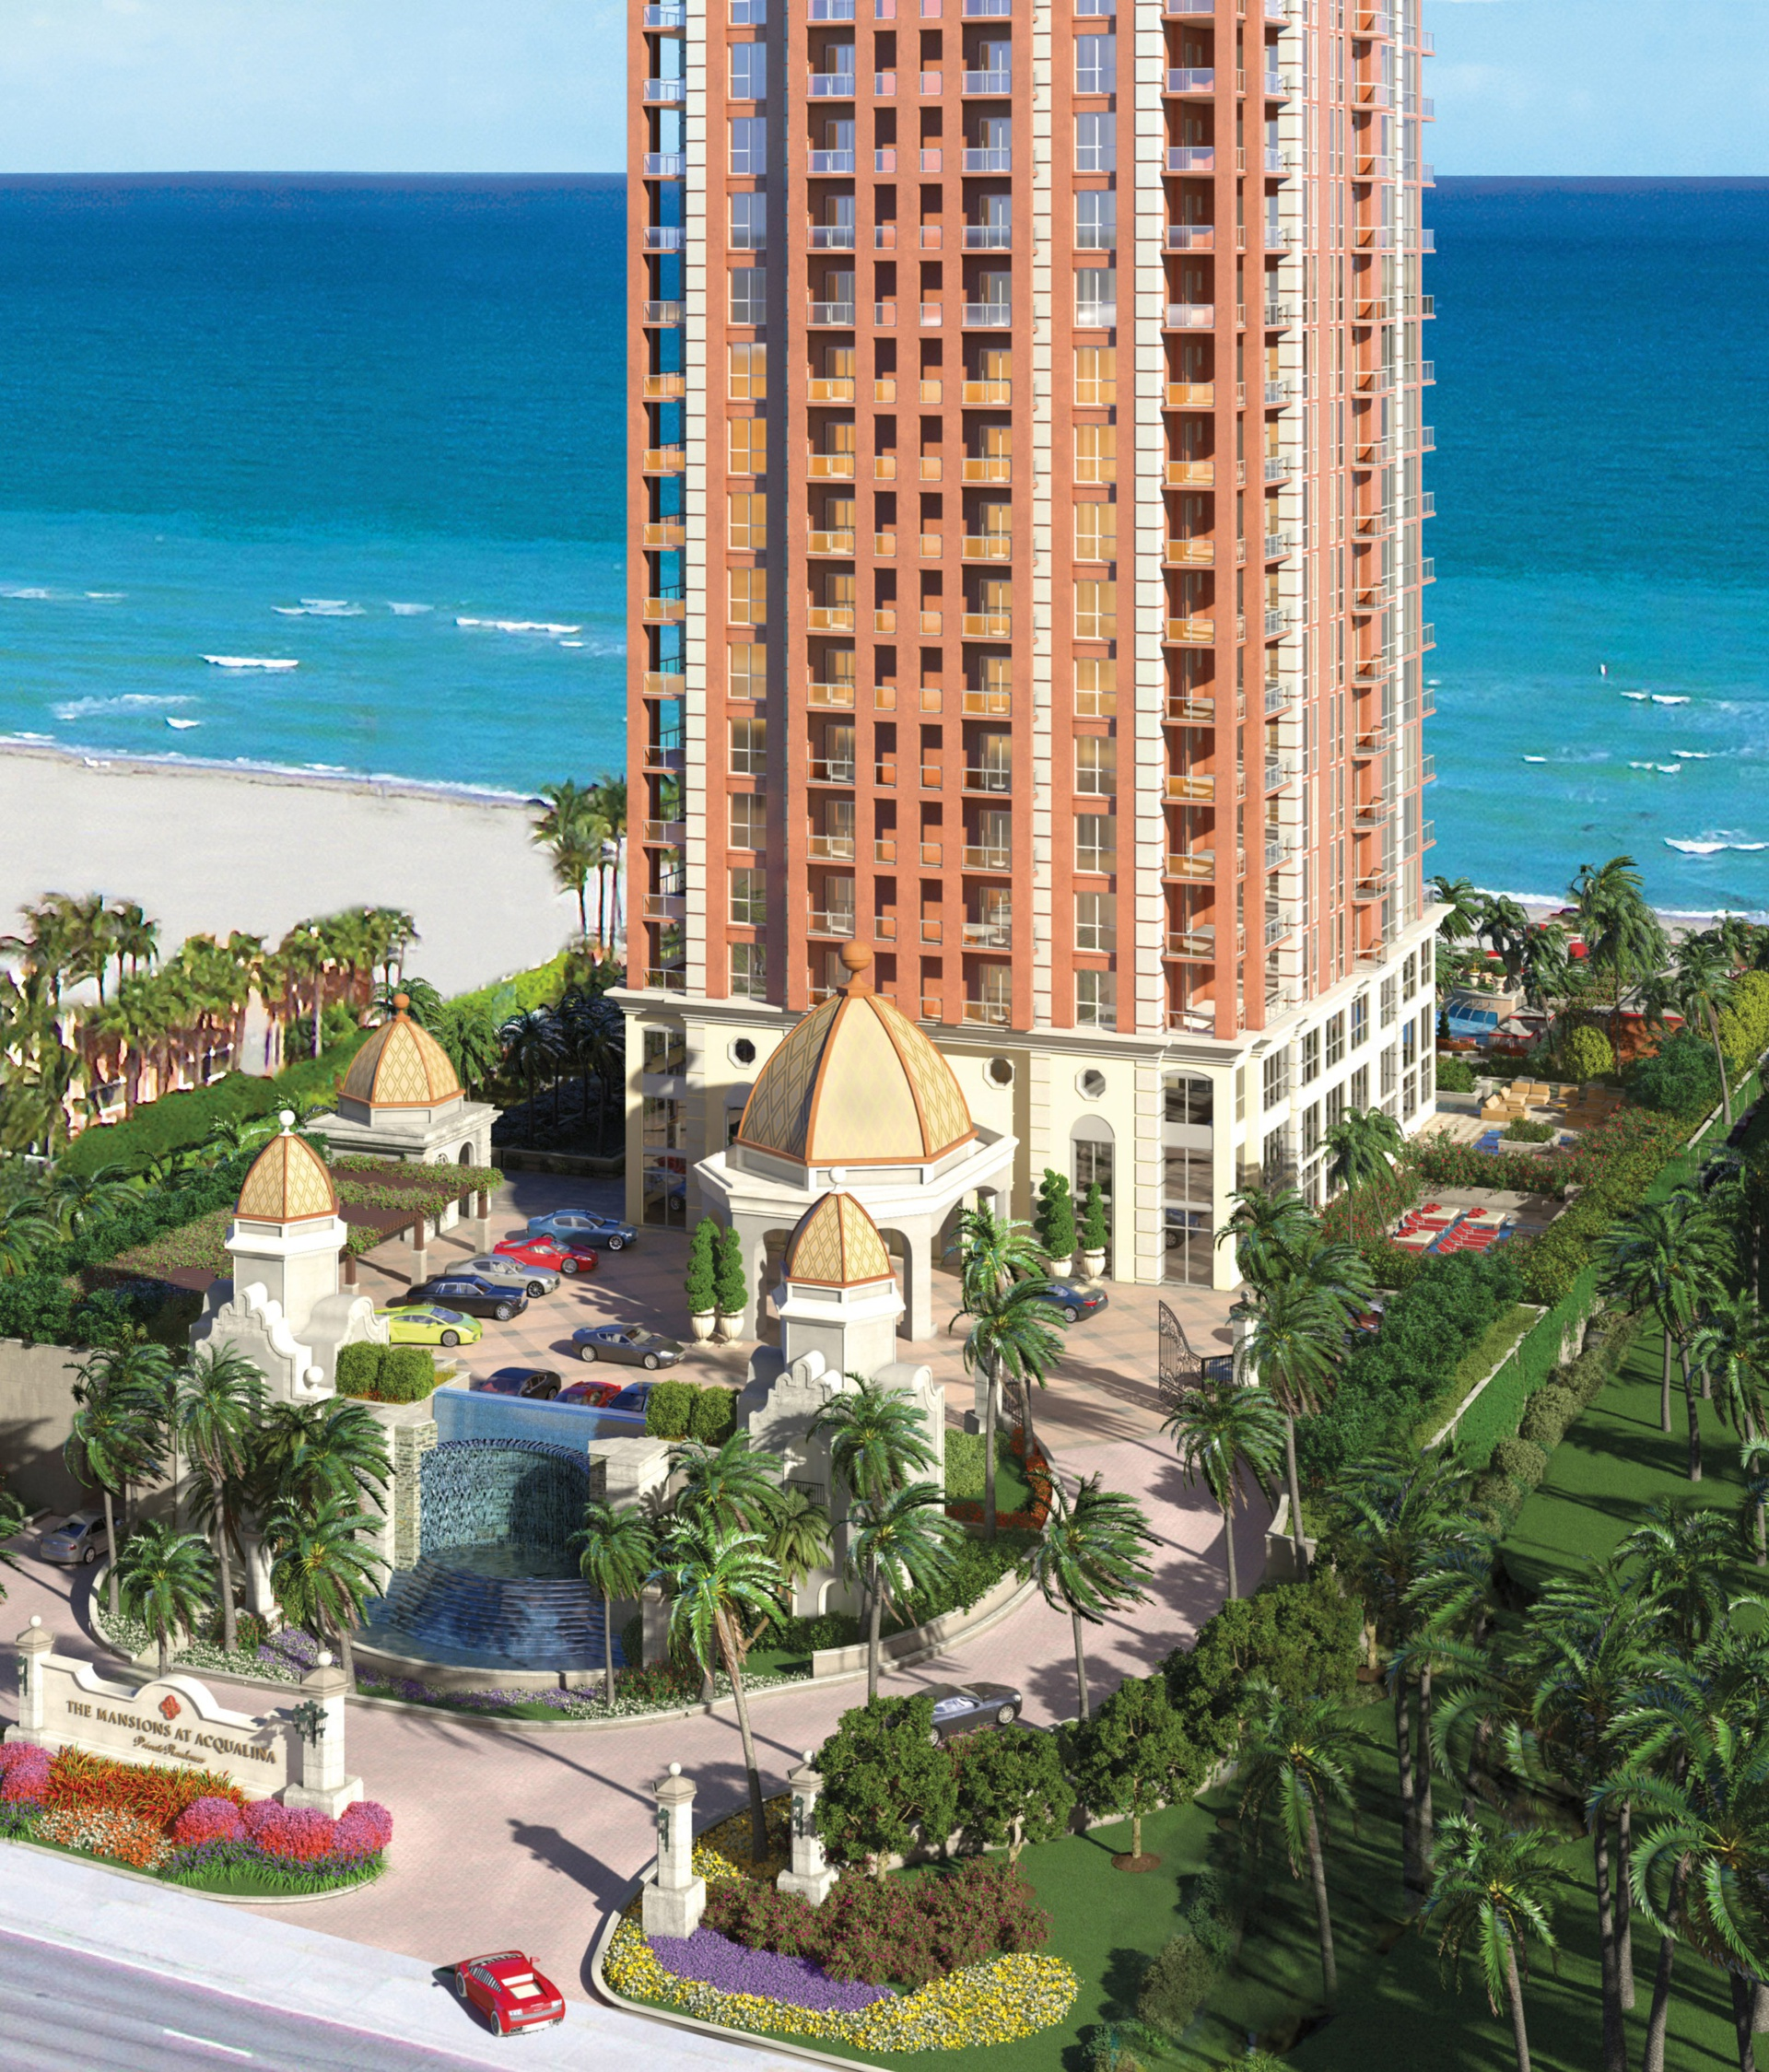 Bayview West Apartments: The Mansions At Acqualina